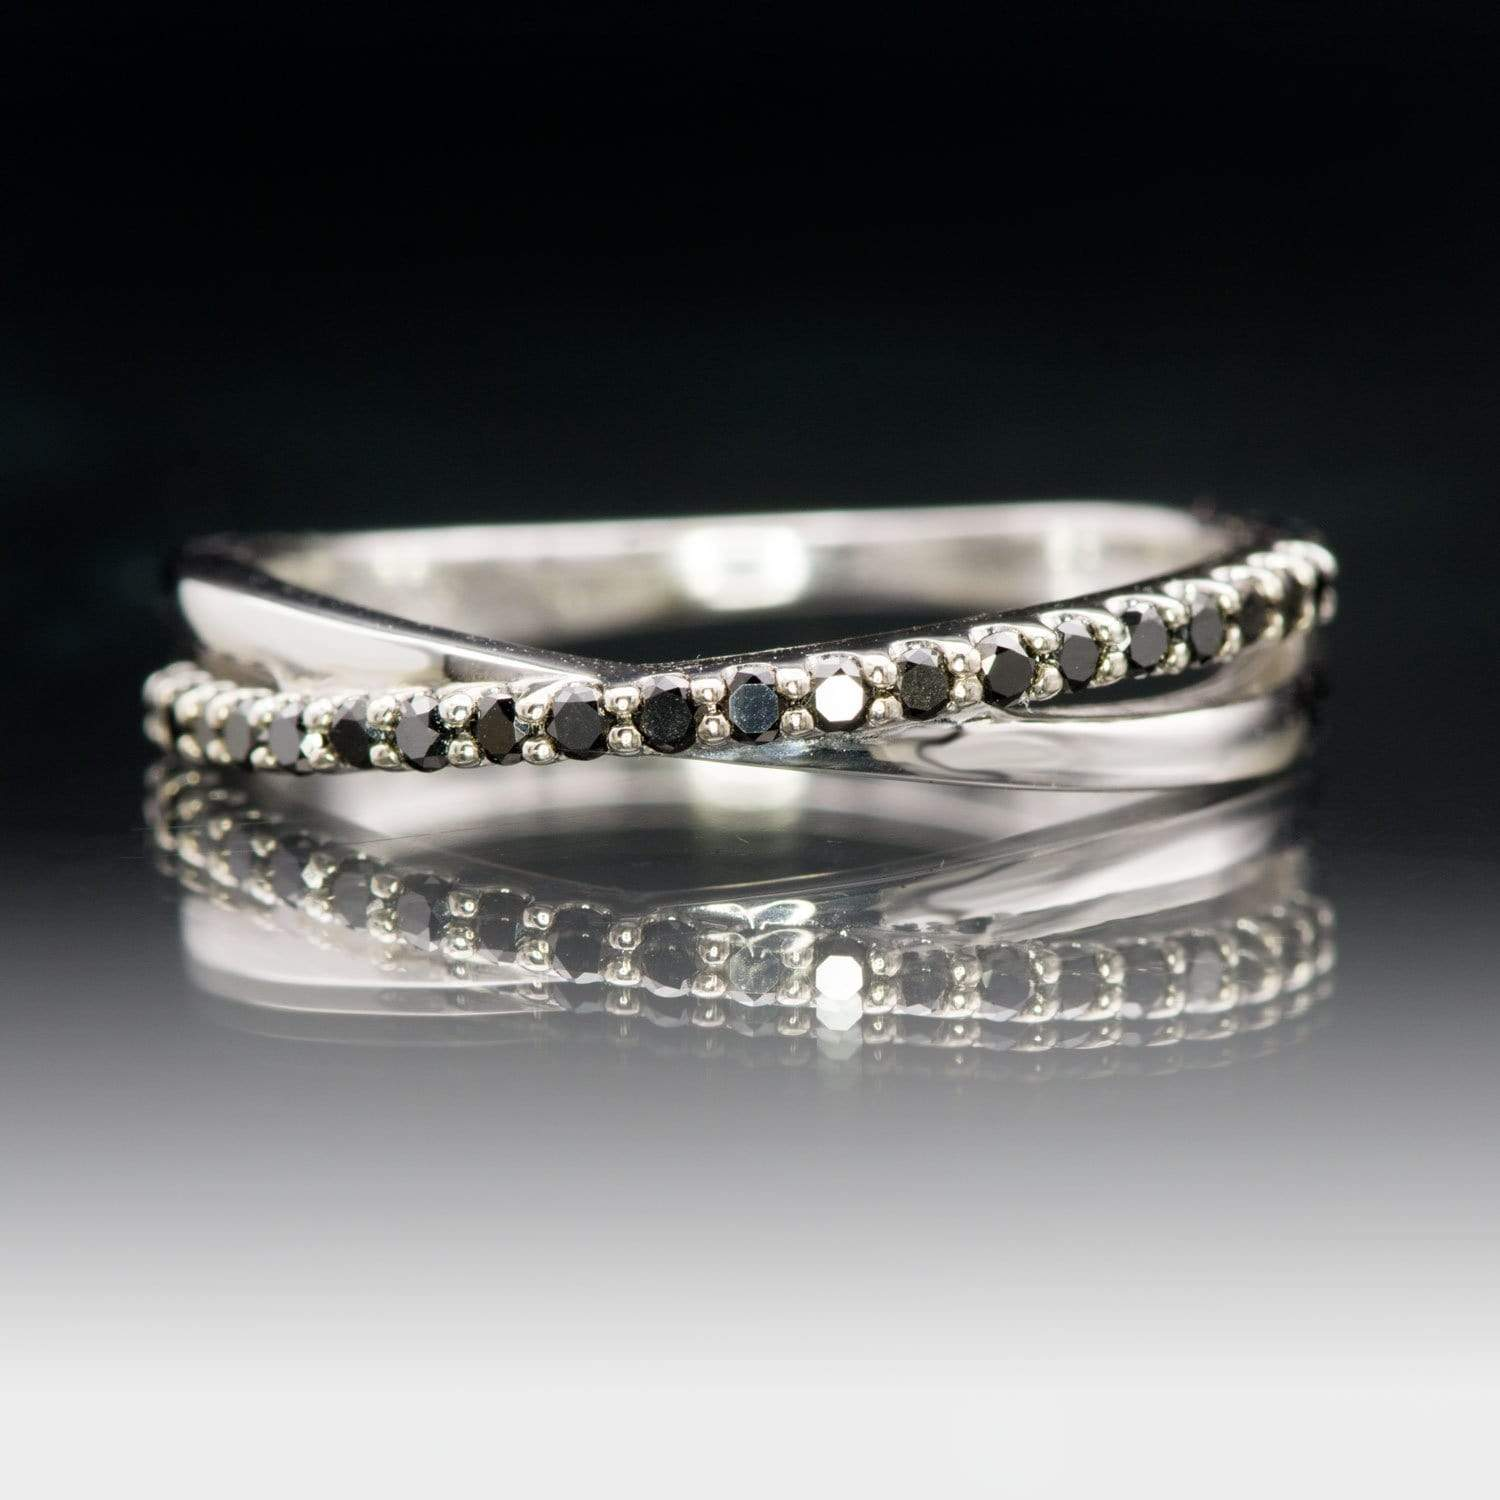 Criss Cross Black Diamond Band - Contoured Wedding Ring with Black Diamonds